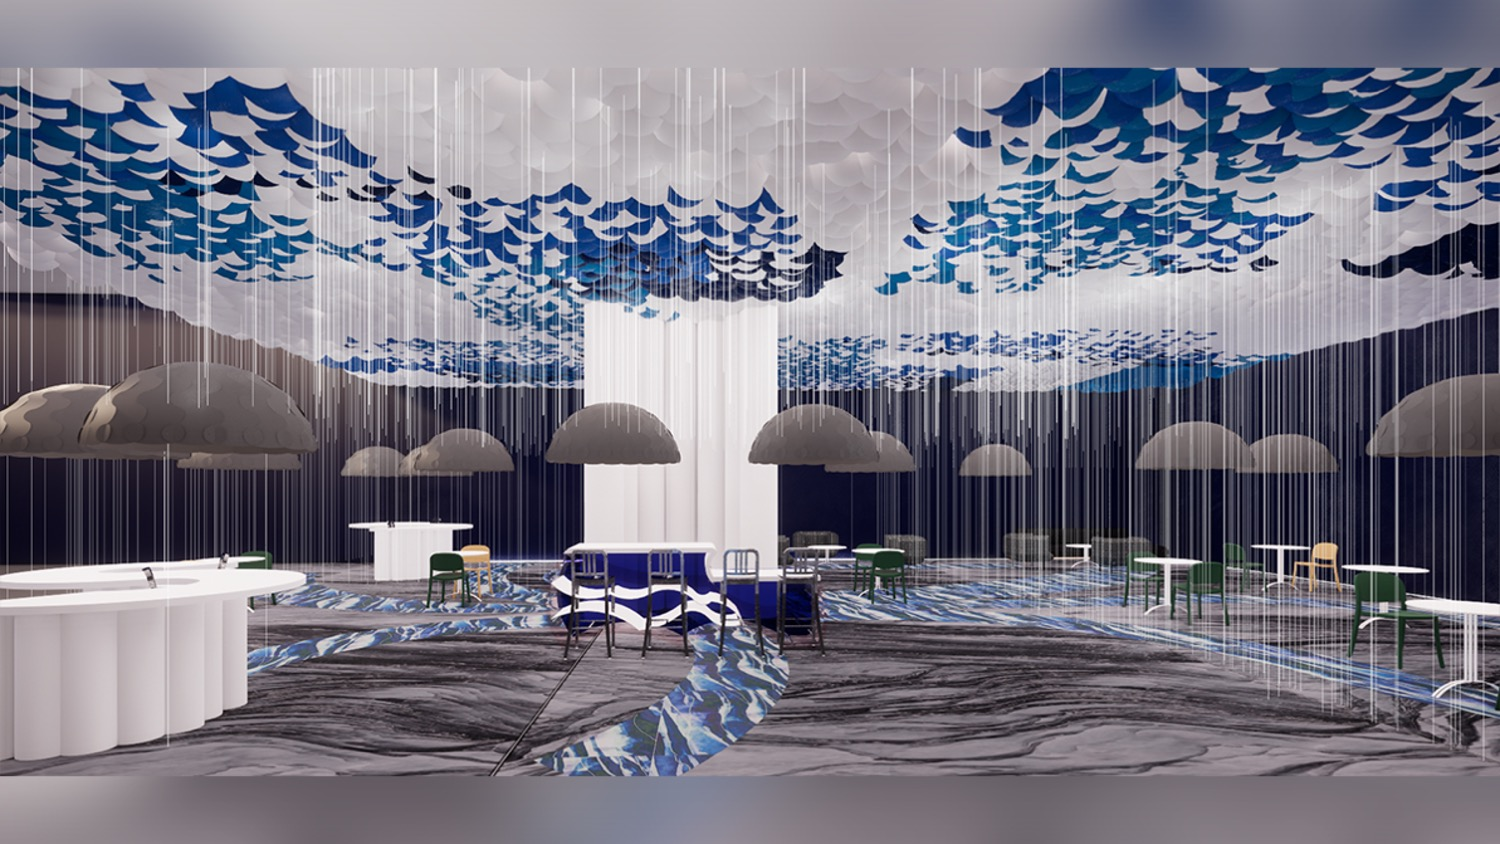 A rendering of a bar and cafe that gives the appearance it's raining.